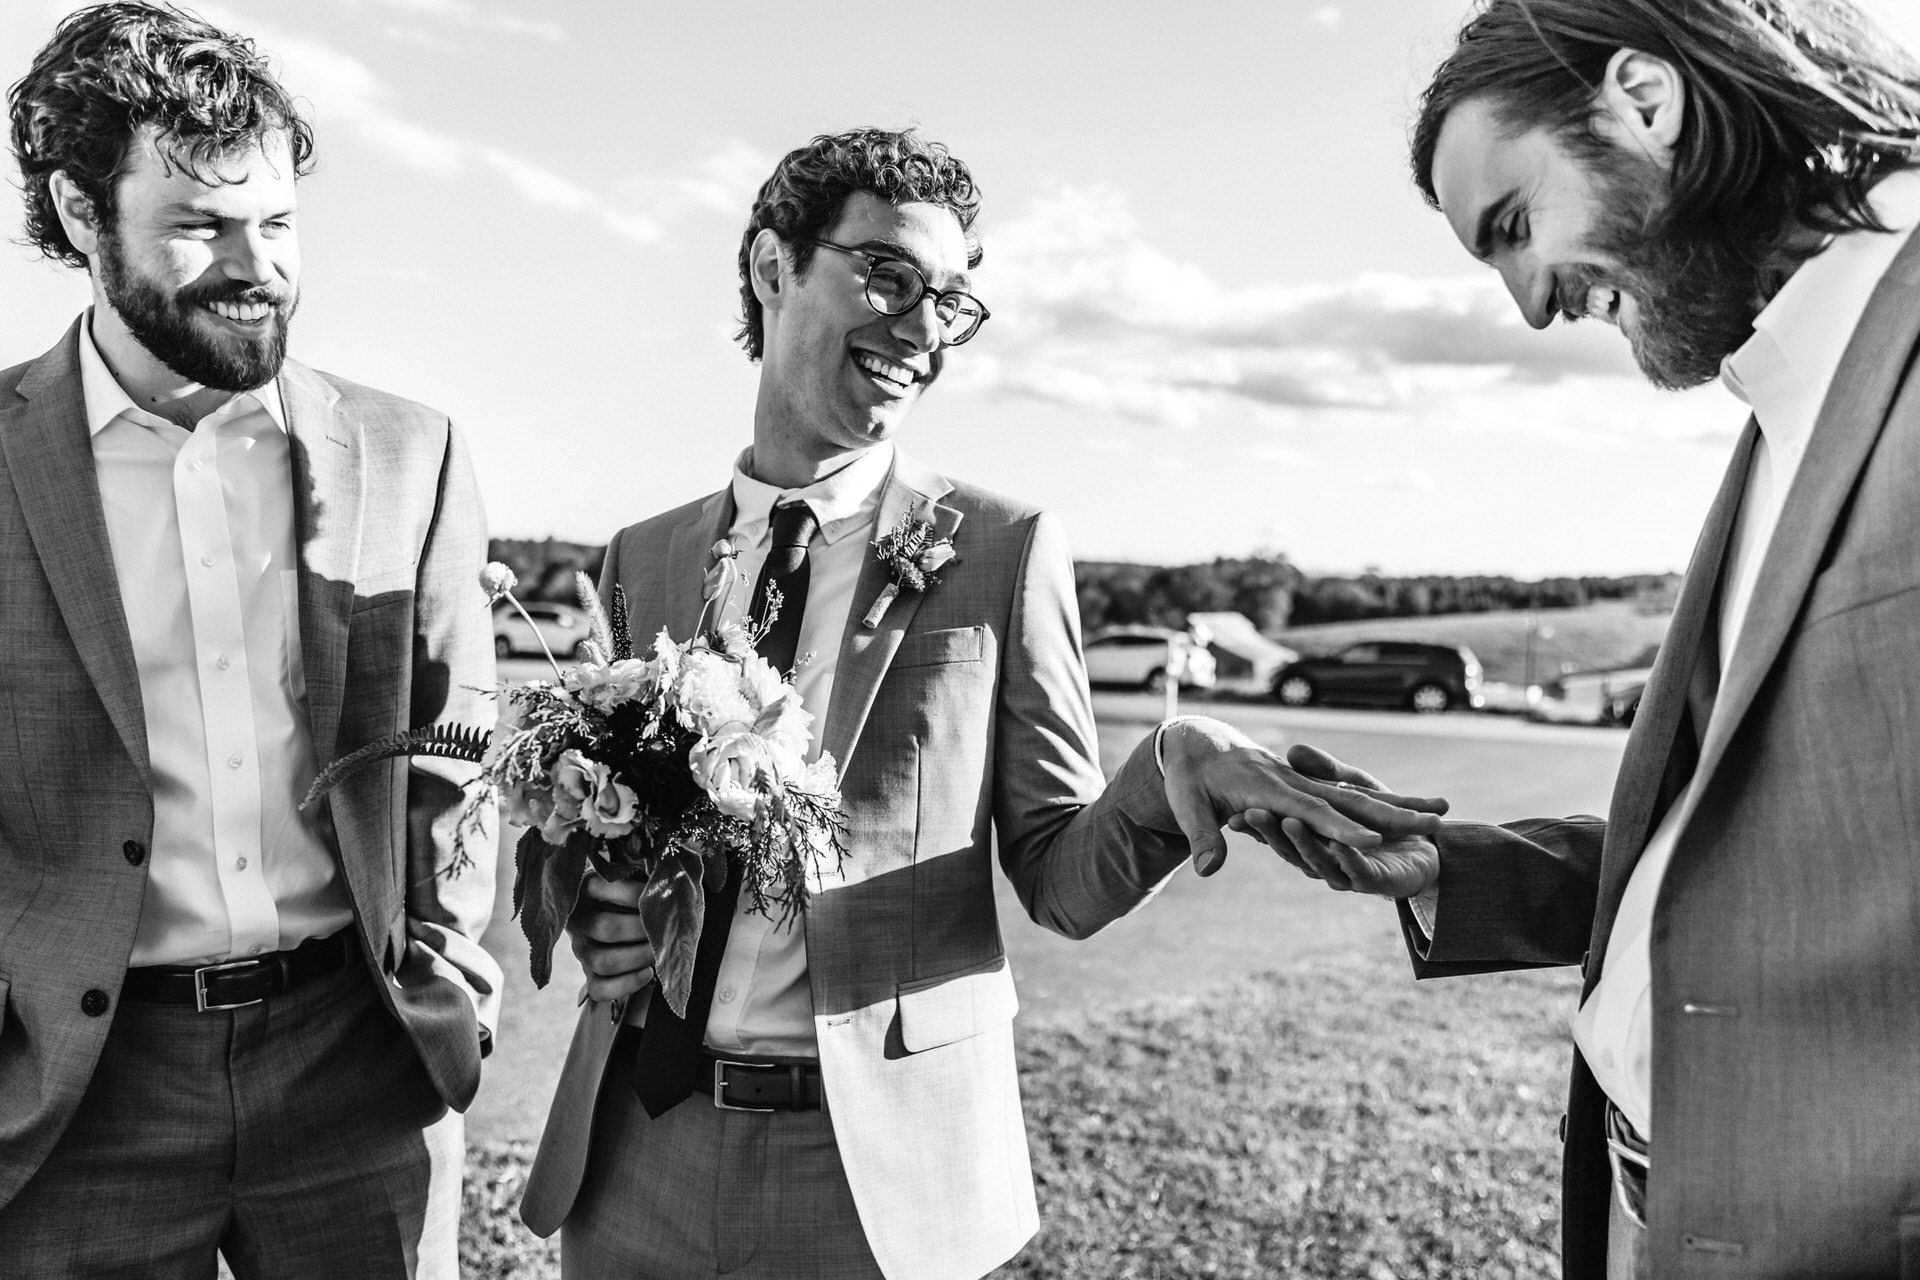 Wedding and Event Photography for Charlottesville, VA | The groom lovingly mocking the way the bride is showing off her ring